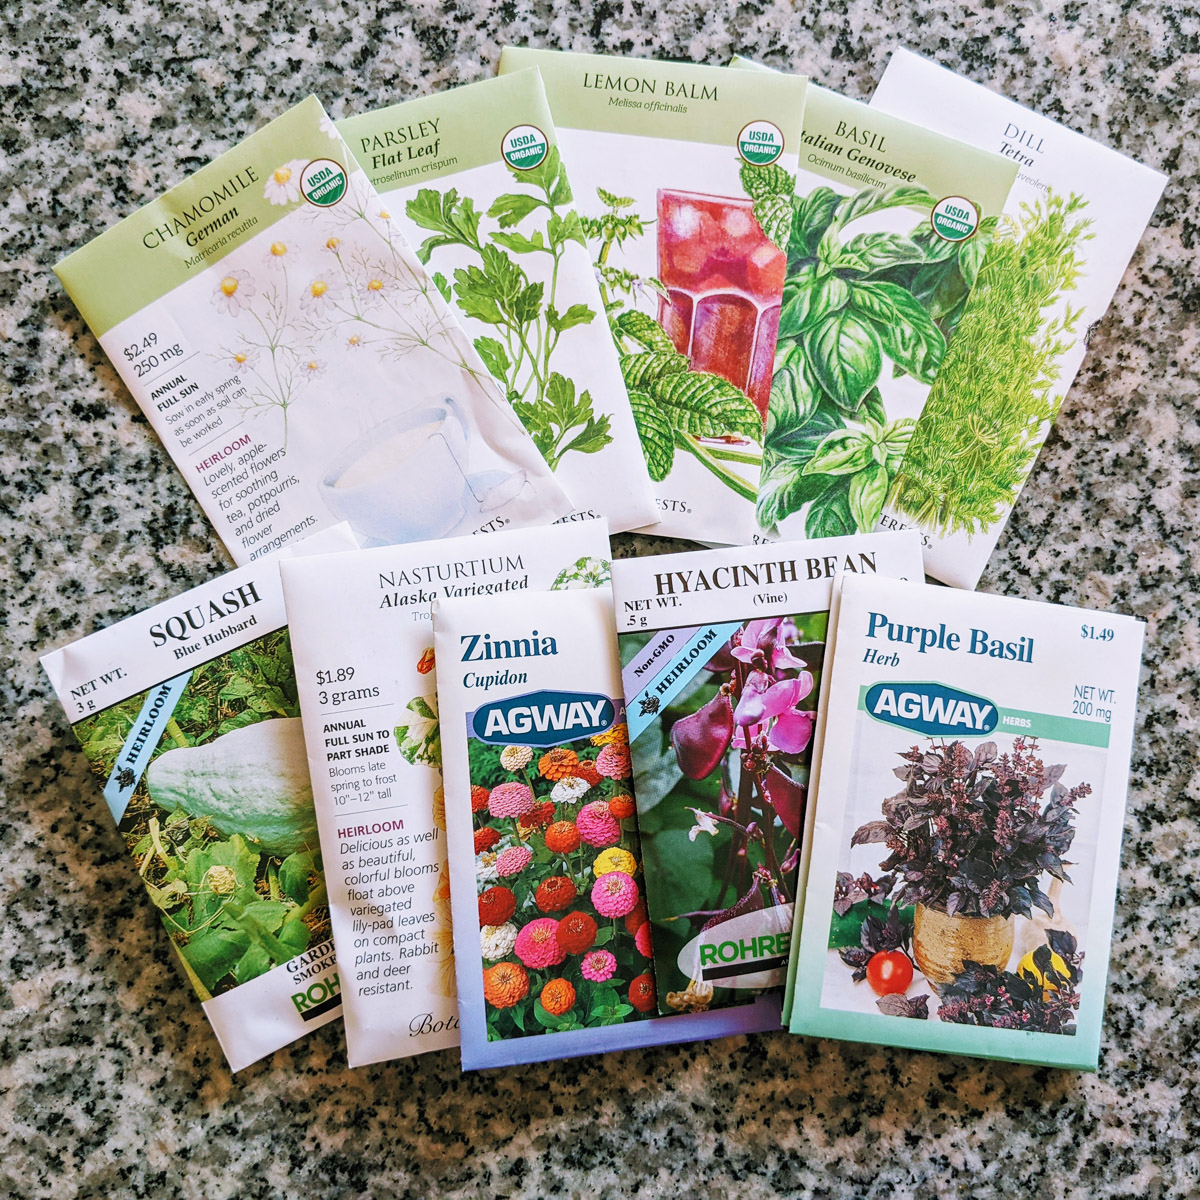 Agway Clearance Seeds purchased for 25% off in mid-September 2021